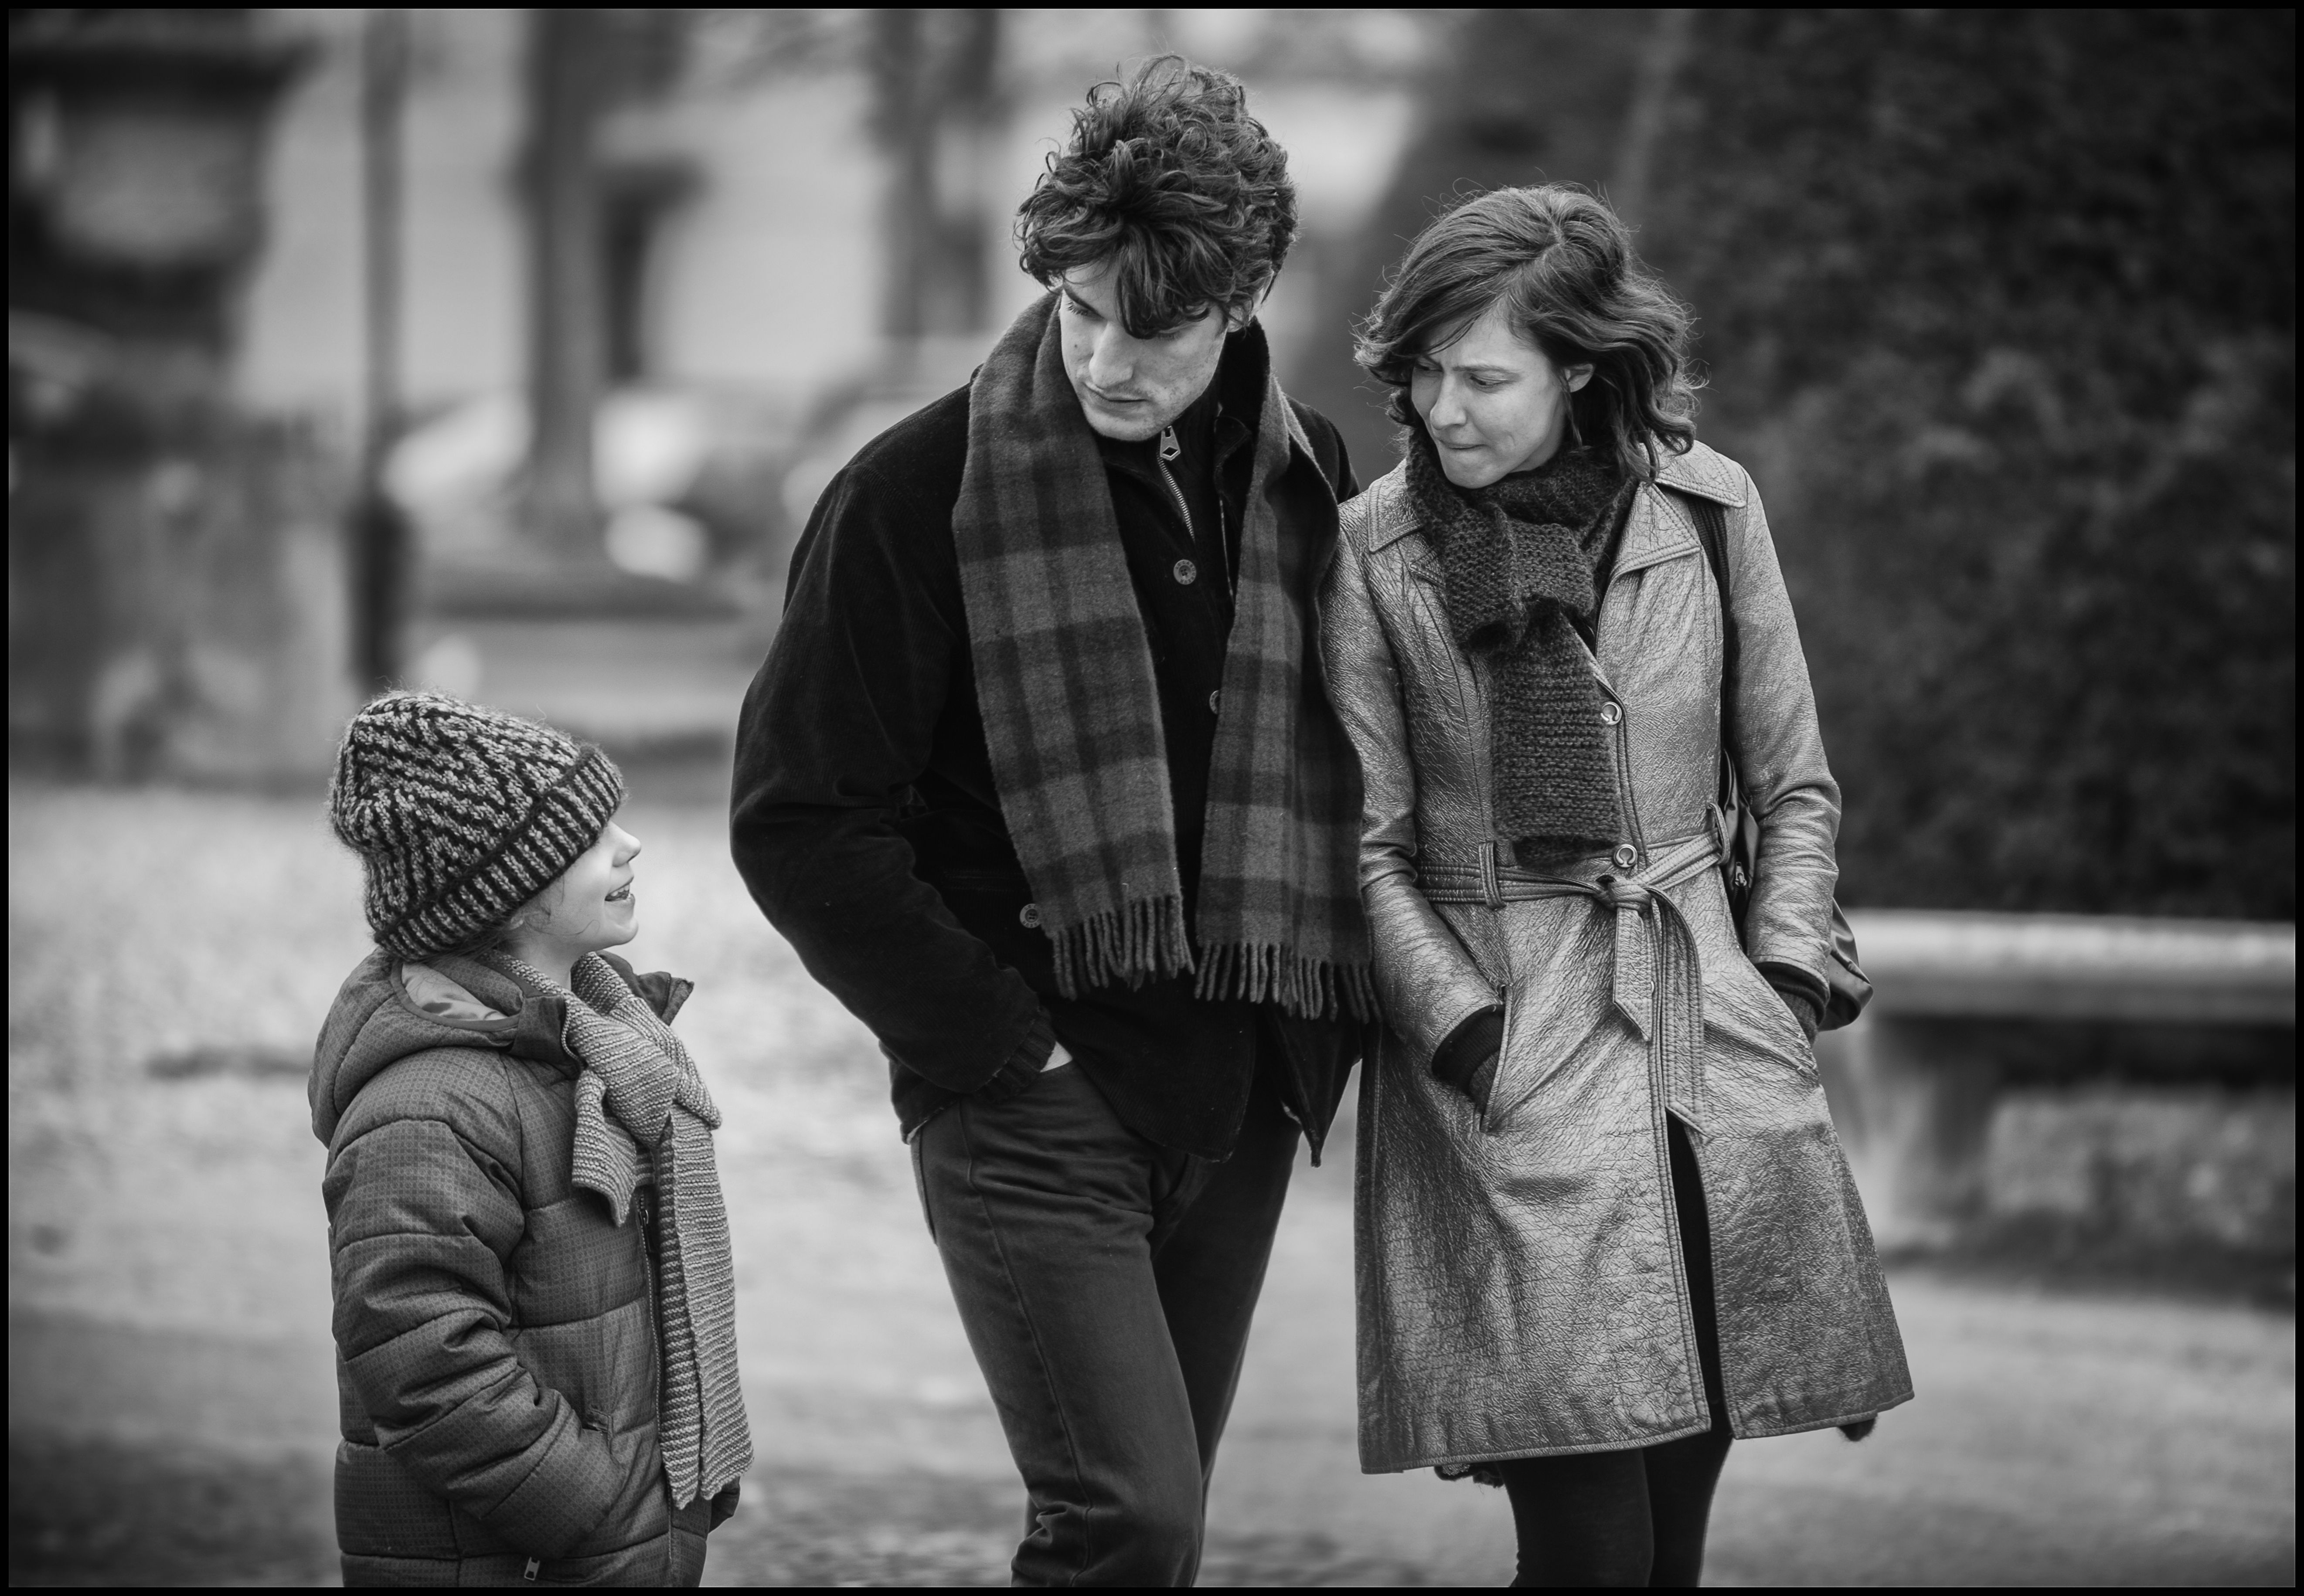 "Jealousy | Celluloid Dreams: Films Shot on Films | D Philippe Garrel | France, Italy, Switzerland, 2013 | L French ""A masterful work ... the film takes on the air of a fairytale, a quality aided no doubt by the fact that much of it unfurls from the child's point of view."" – Senses of Cinema"